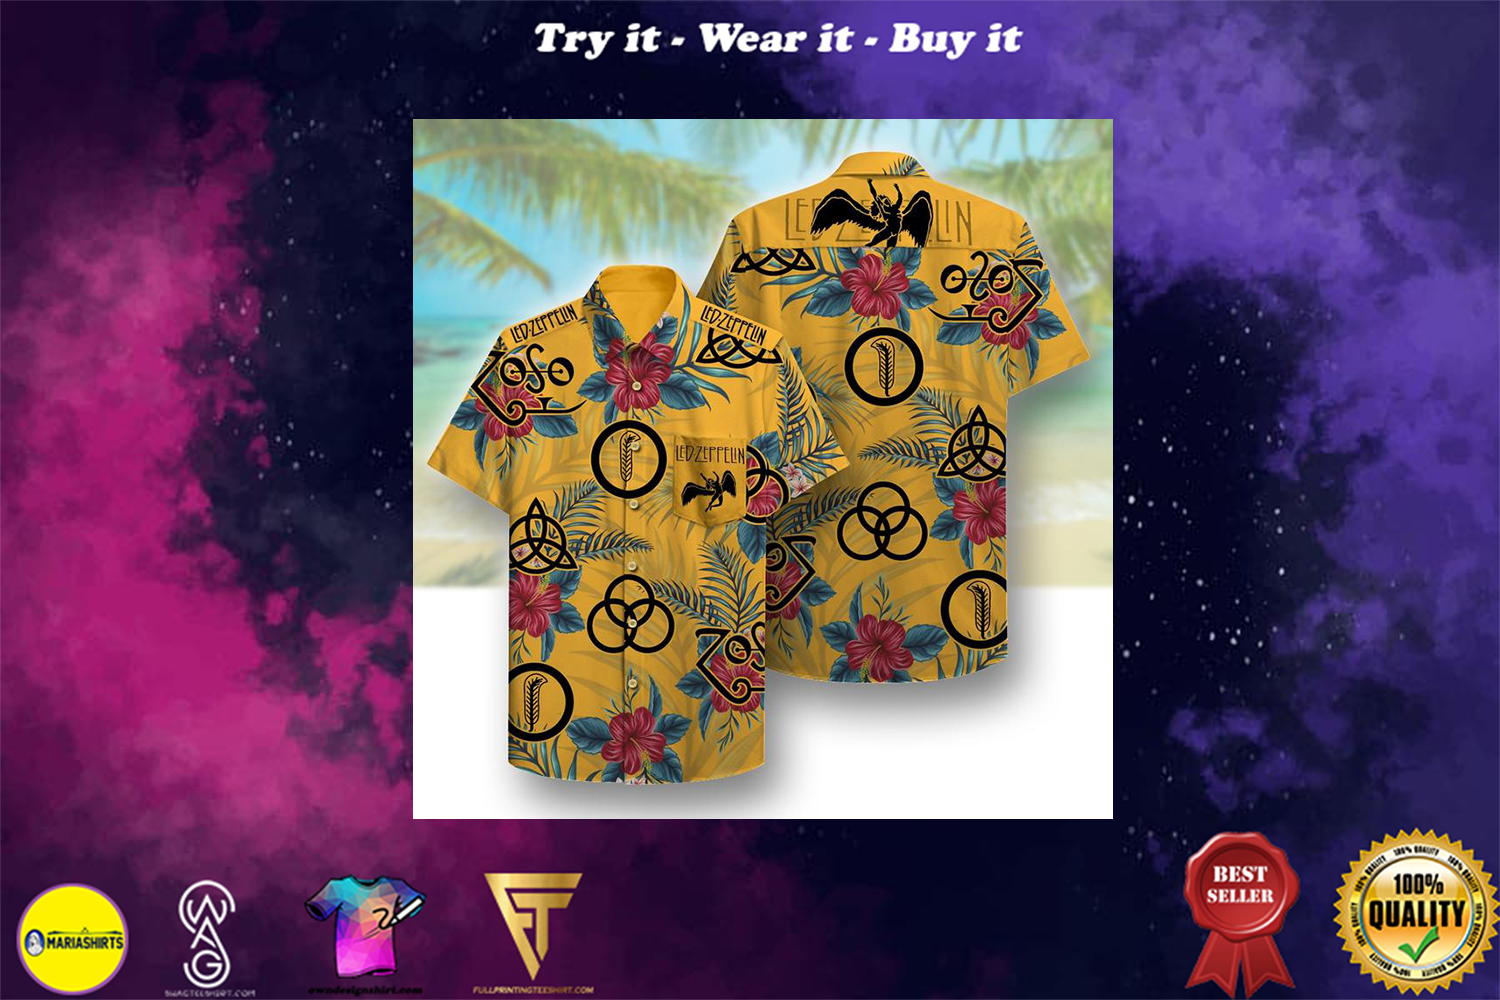 [special edition] led zeppelin all over printed hawaiian shirt - Maria